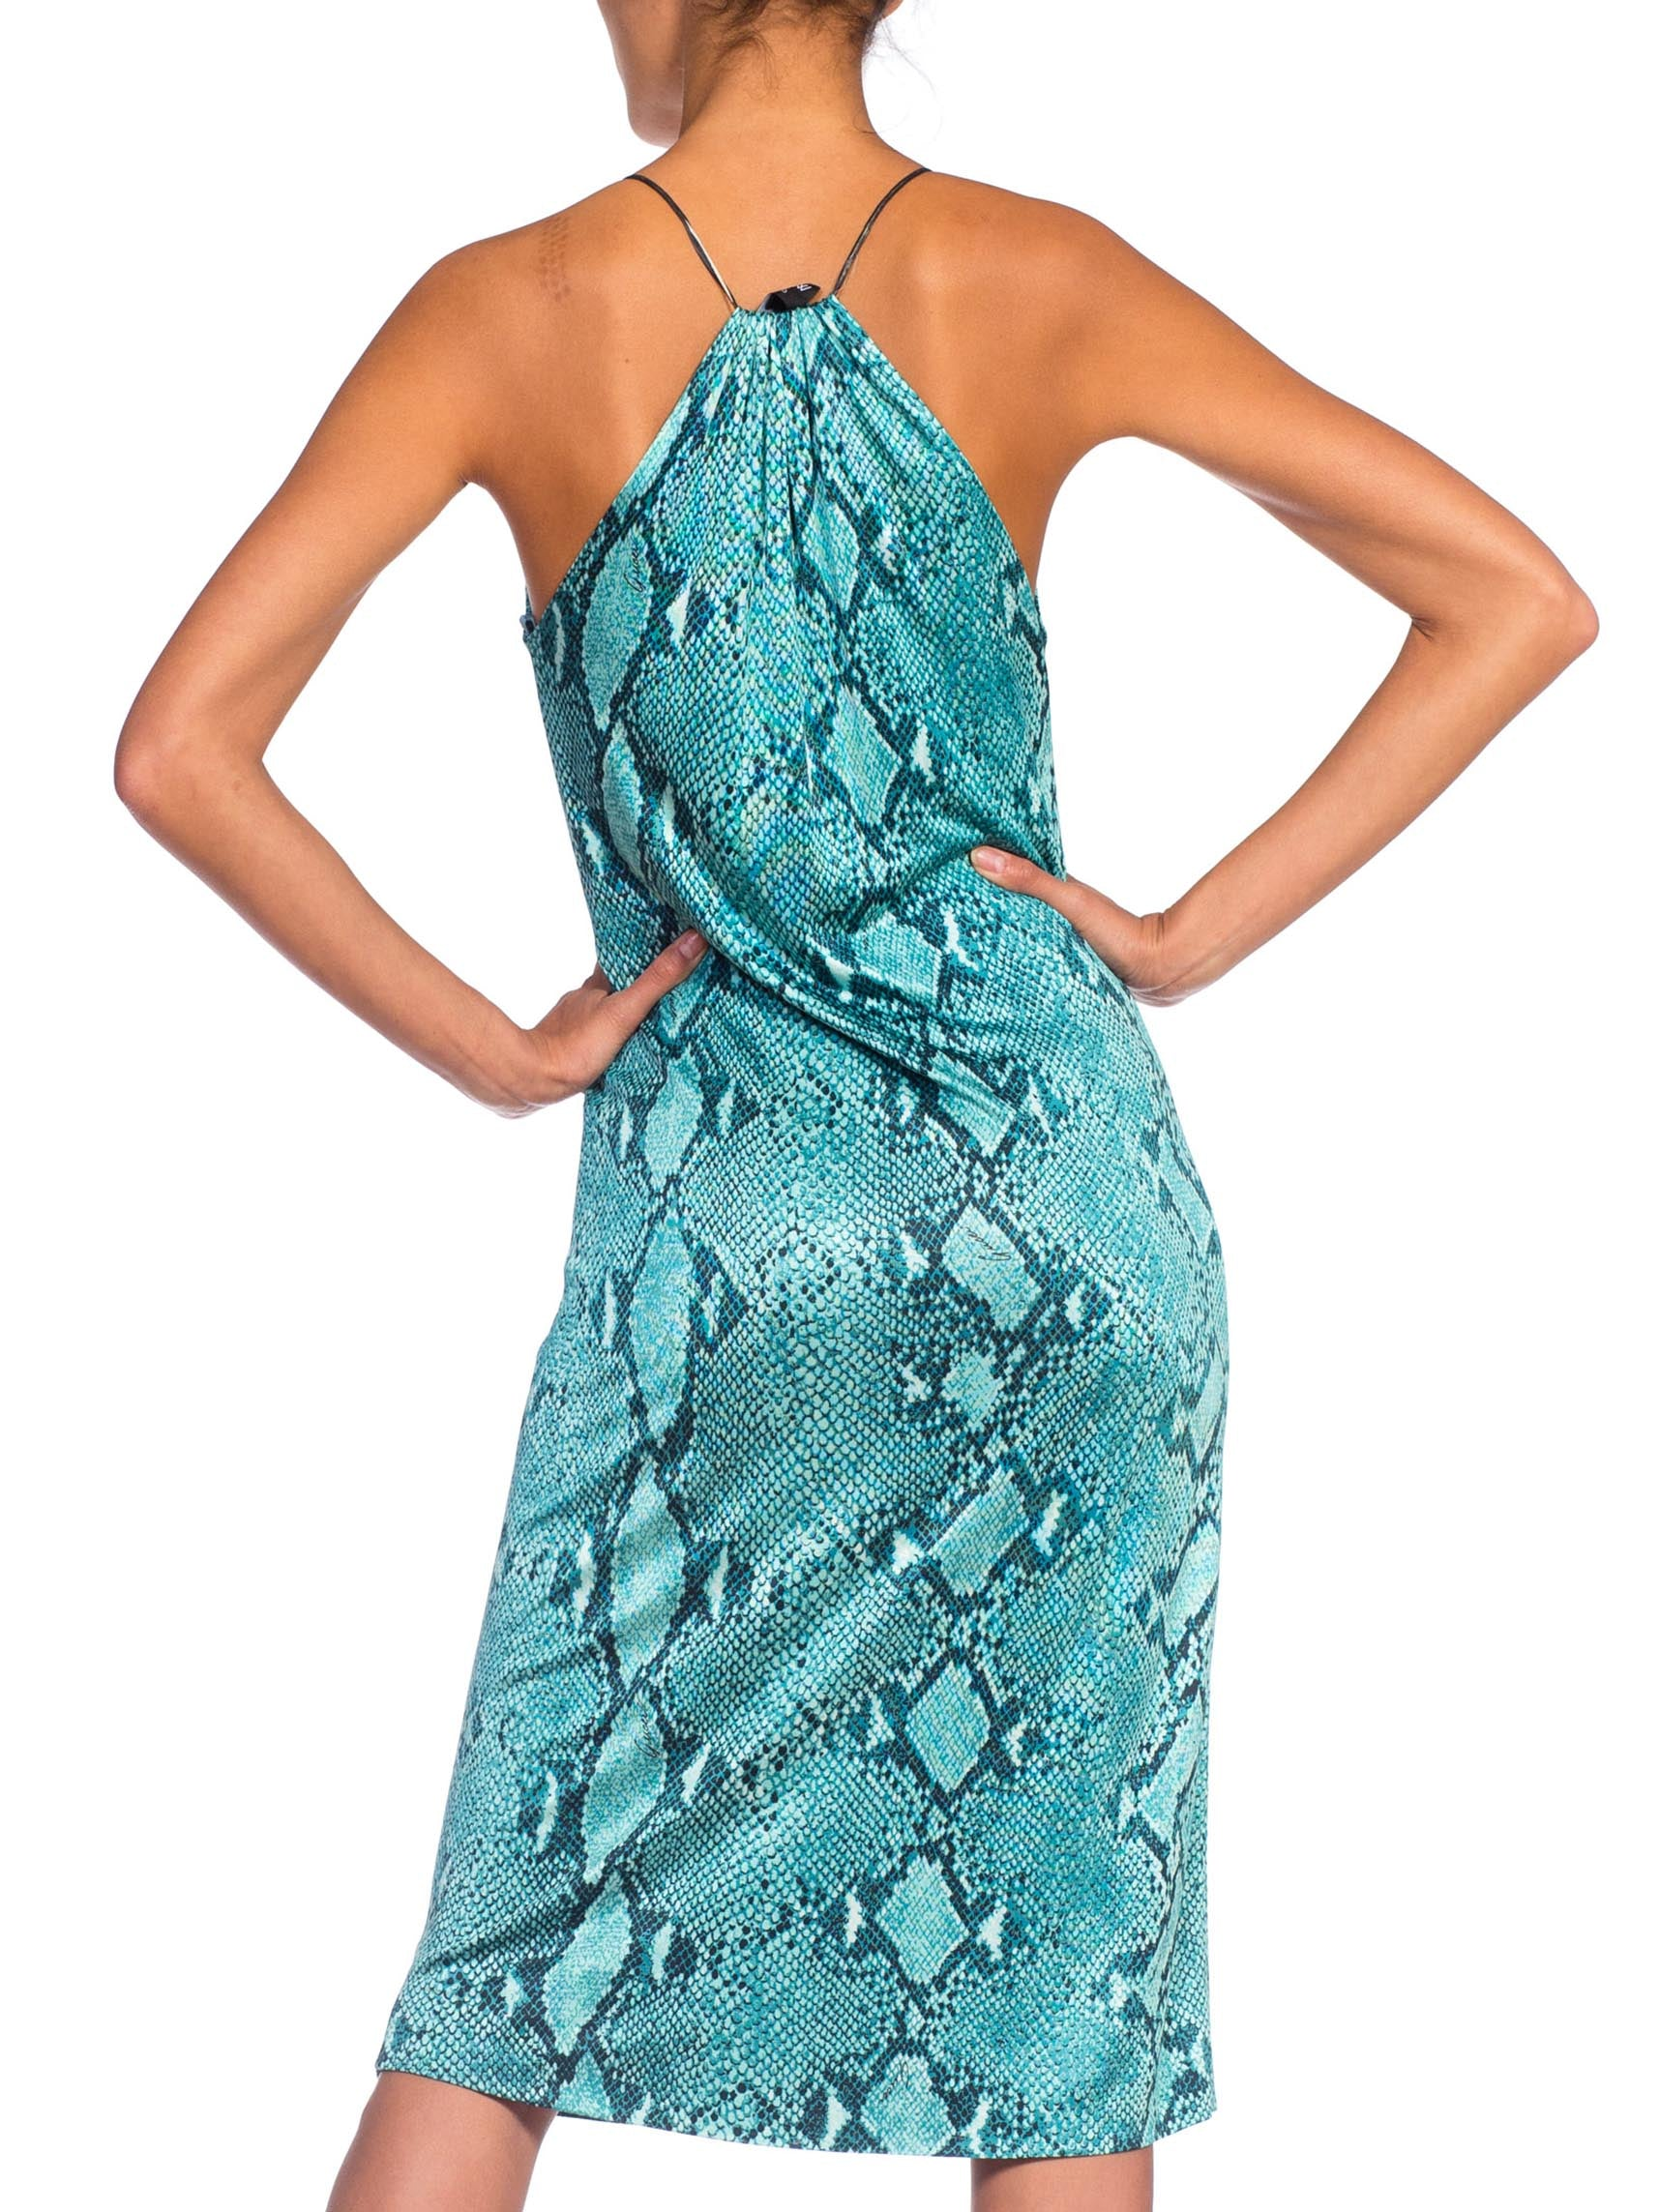 1990S TOM FORD GUCCI Iconic Teal Jersey Snake Print Dress